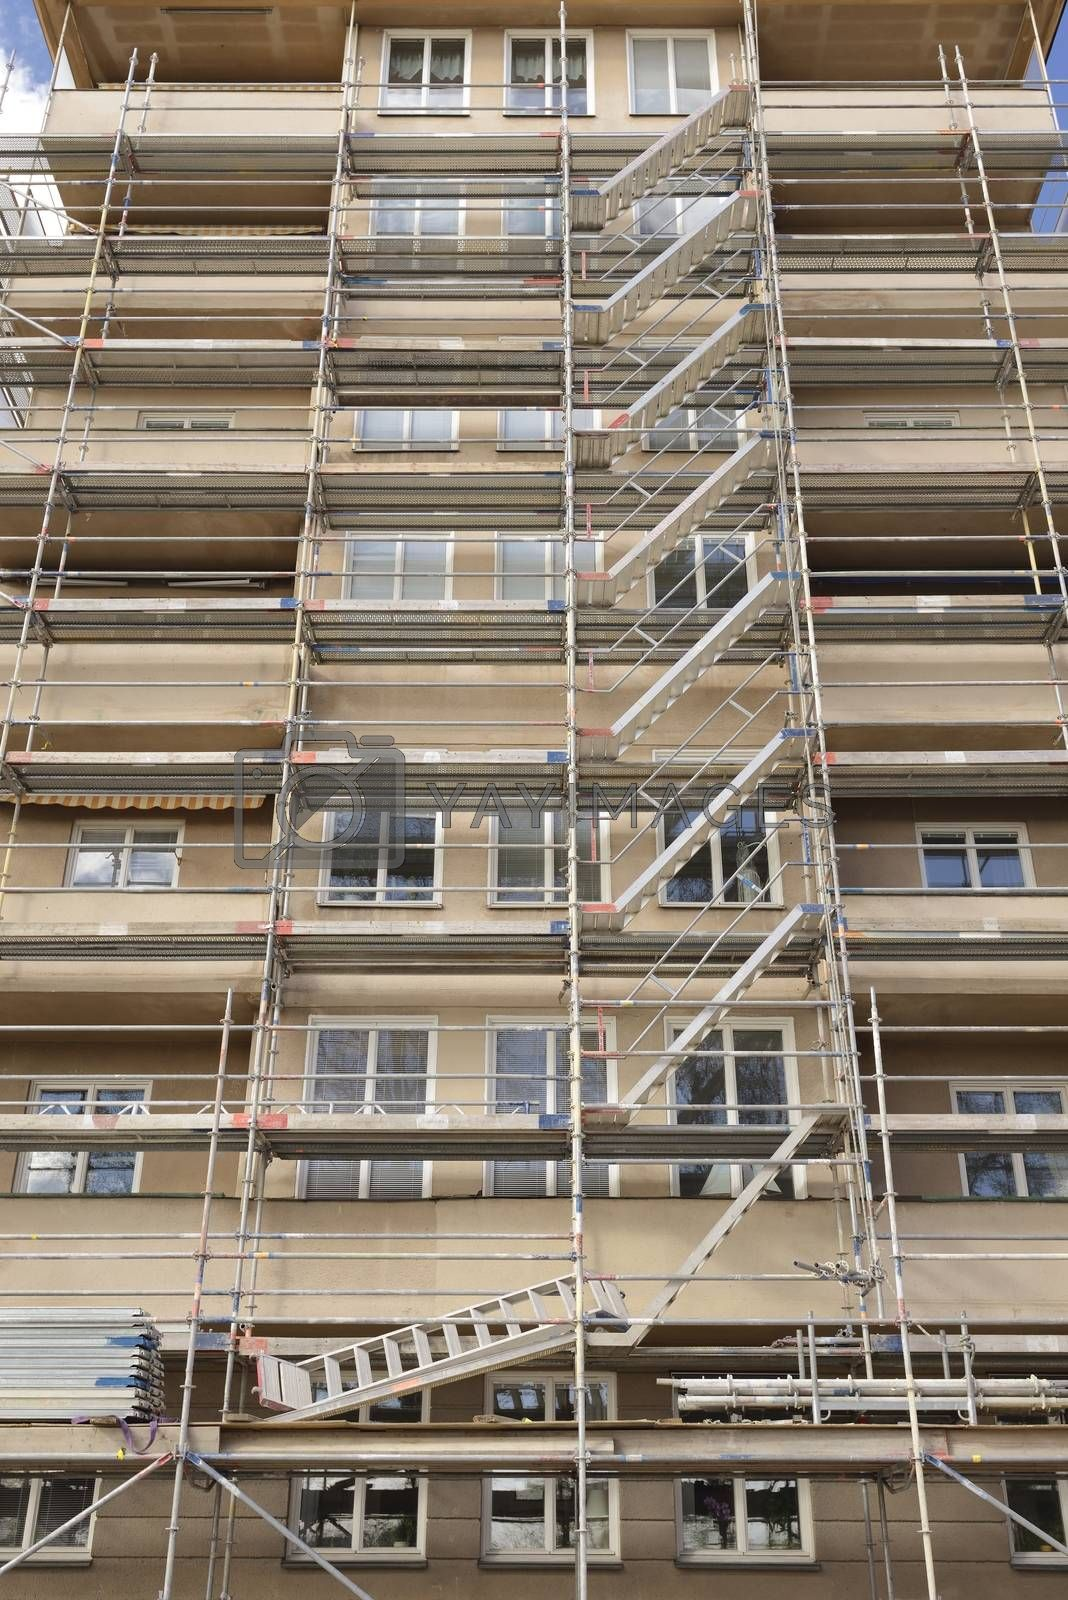 Thermal insulation being installed with scaffolding around the building